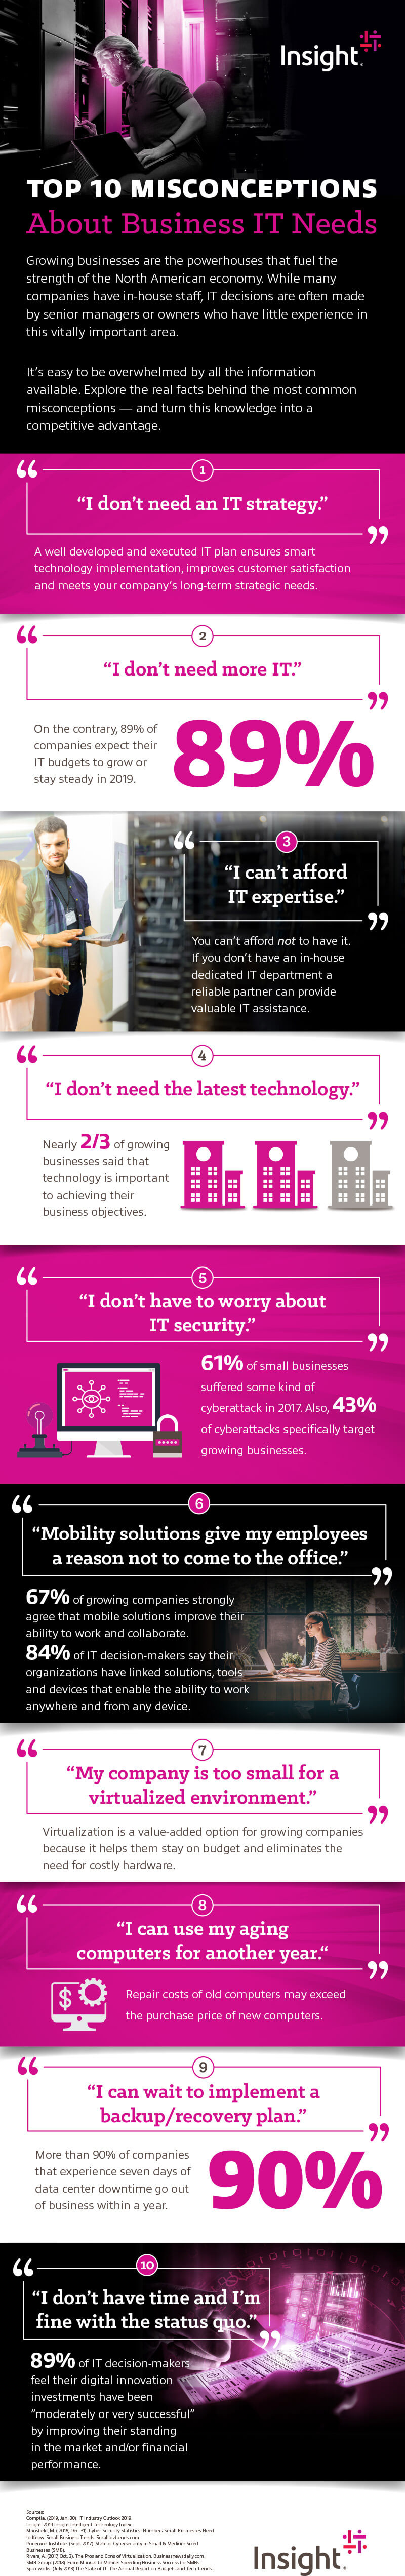 Infographic displaying Top 10 Misconceptions About Business IT Needs Translated below.